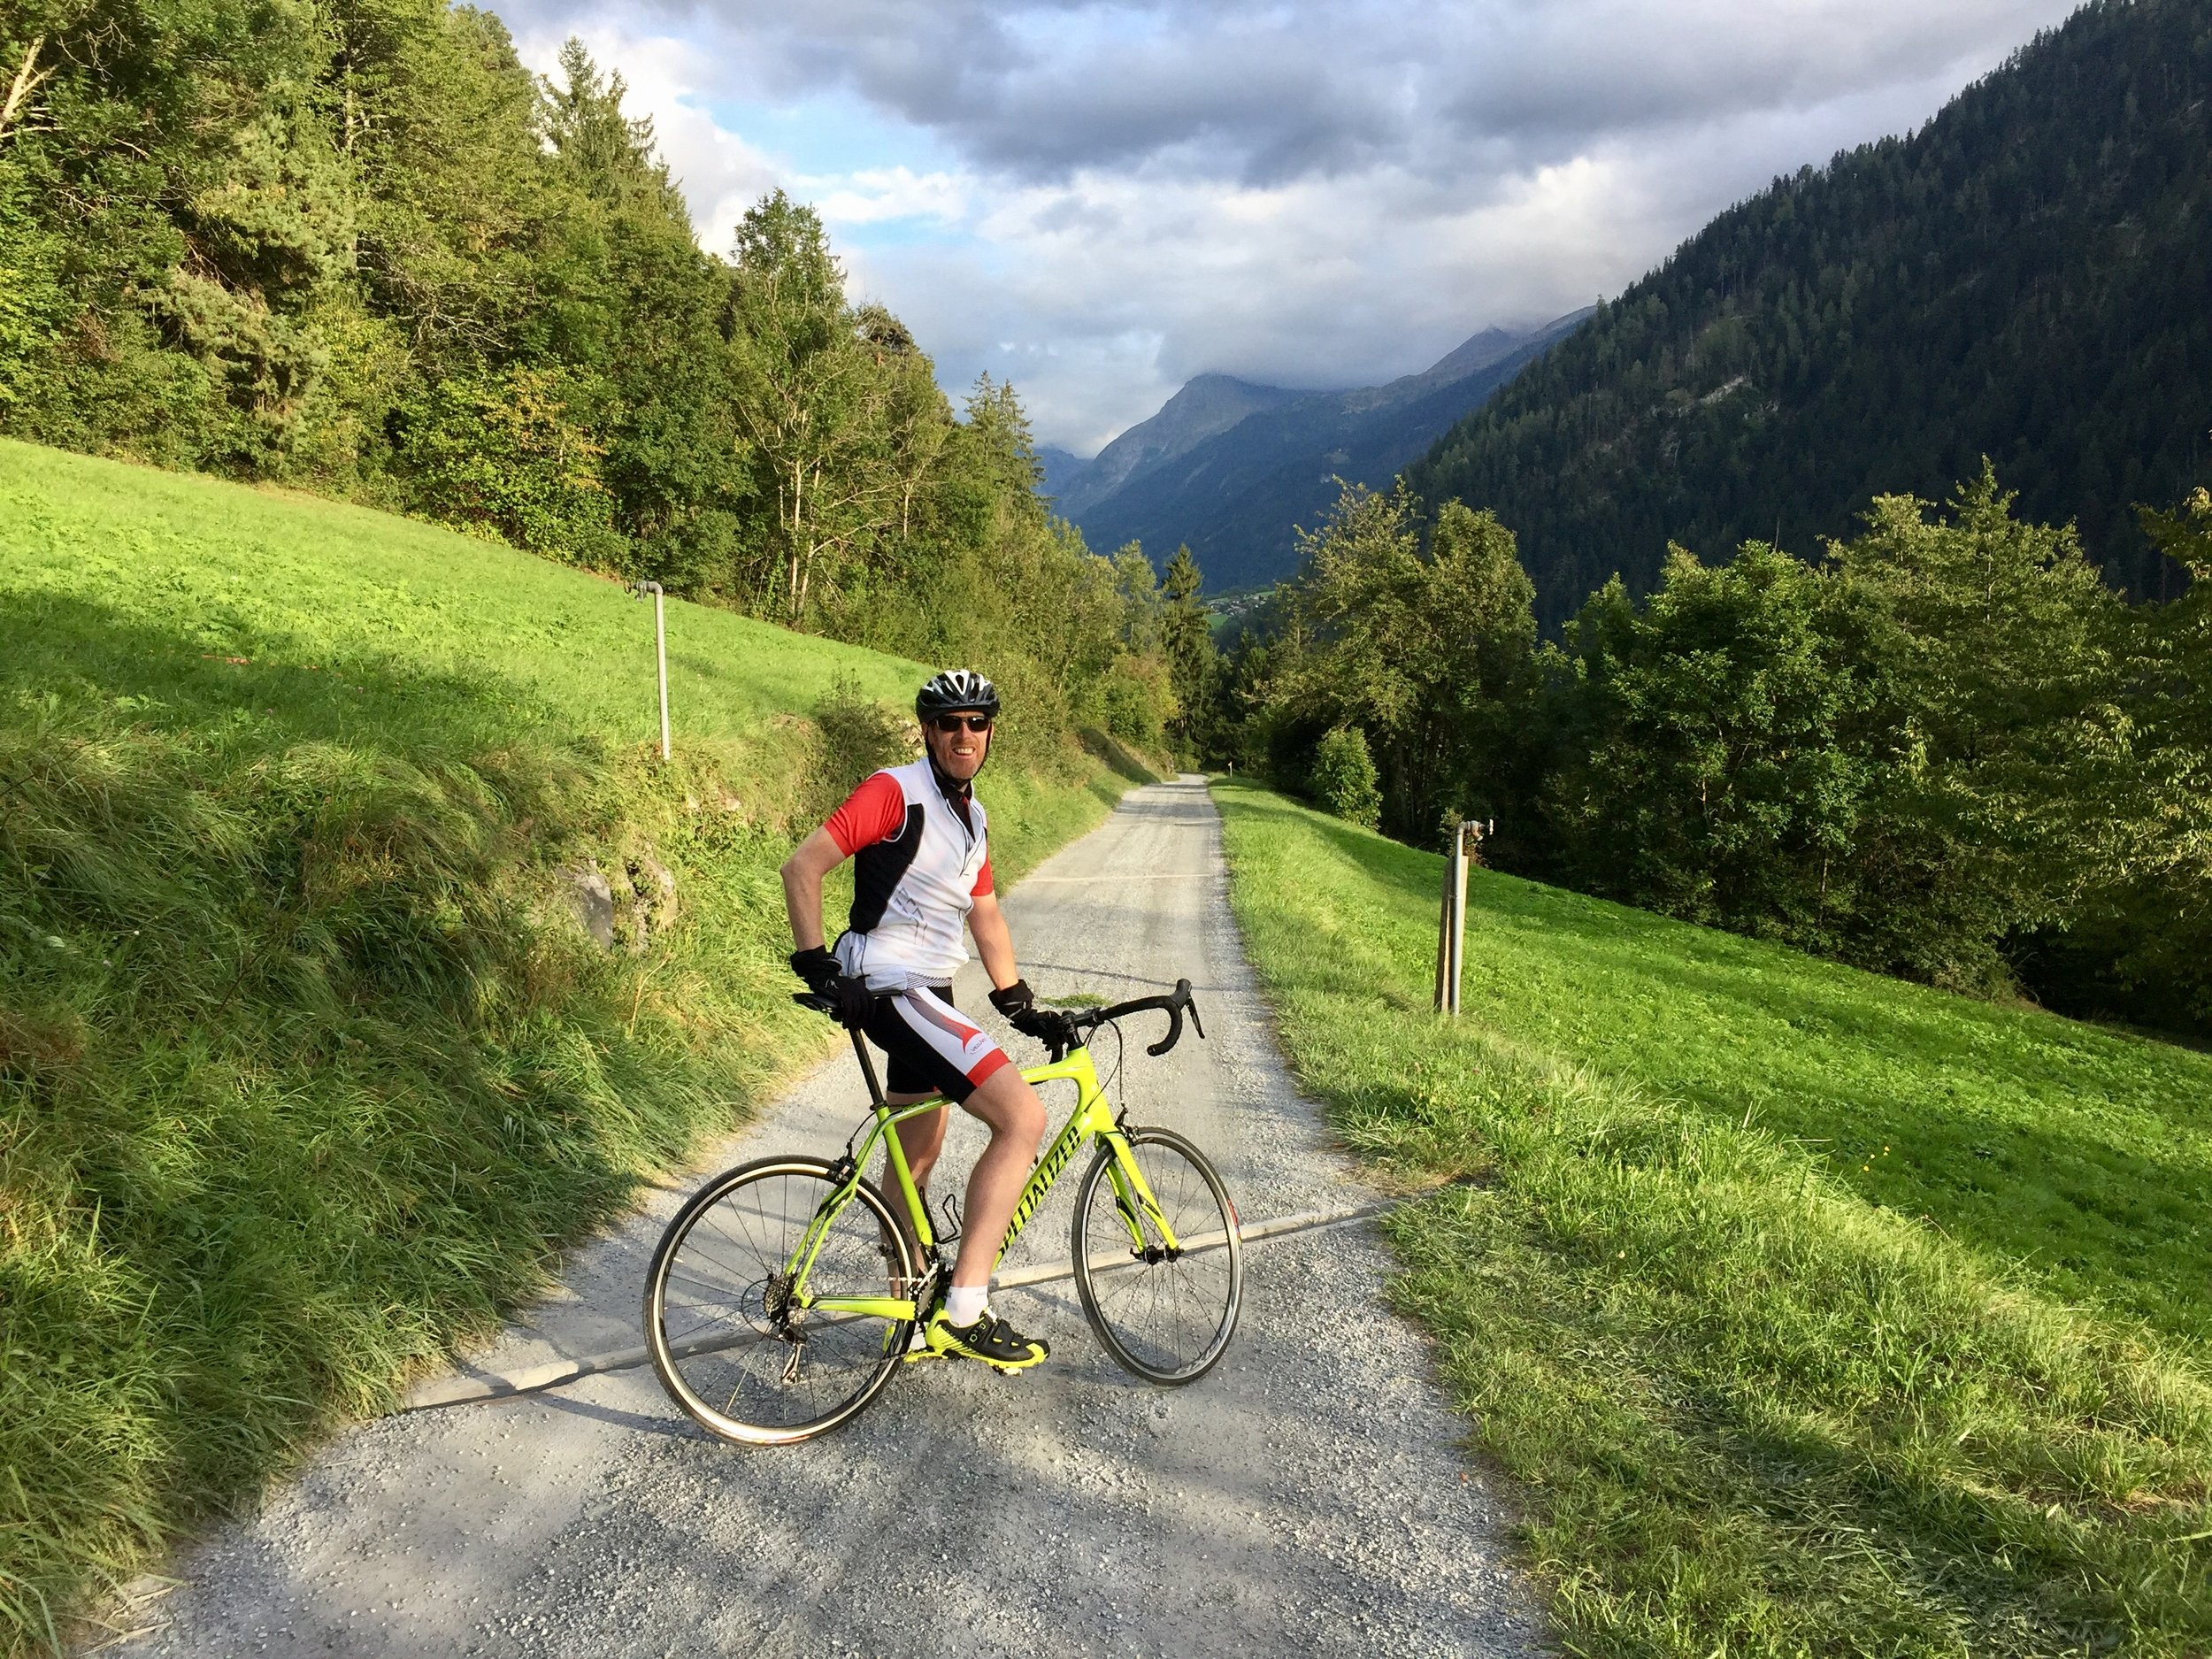 A gentil introduction to alpine cycling and Switzerland